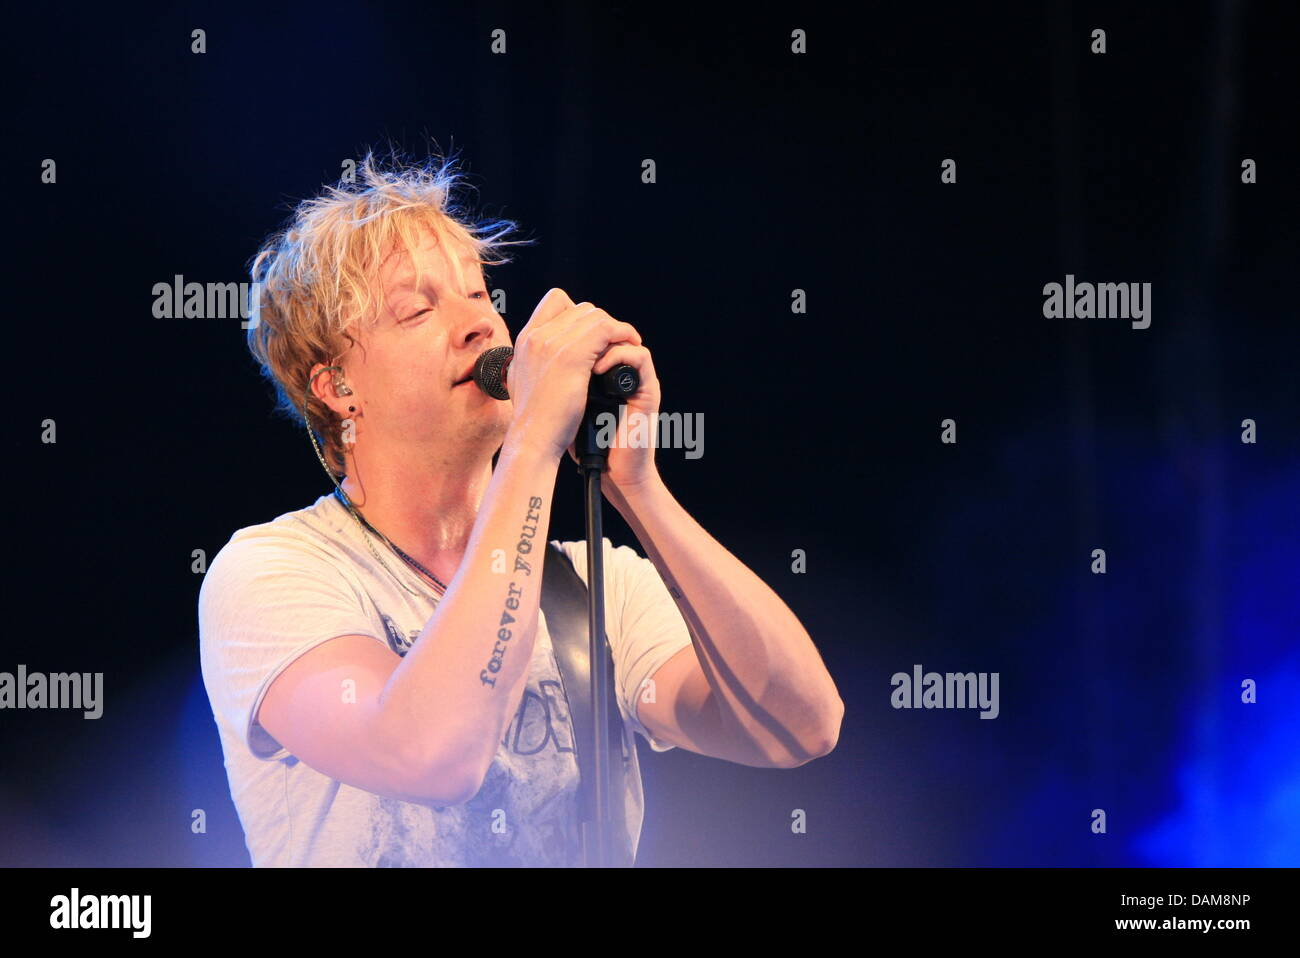 Sunrise Avenue singer Samu Haber from Finland performs at the Schlossgraben festival in Darmstadt, Germany, - Stock Image